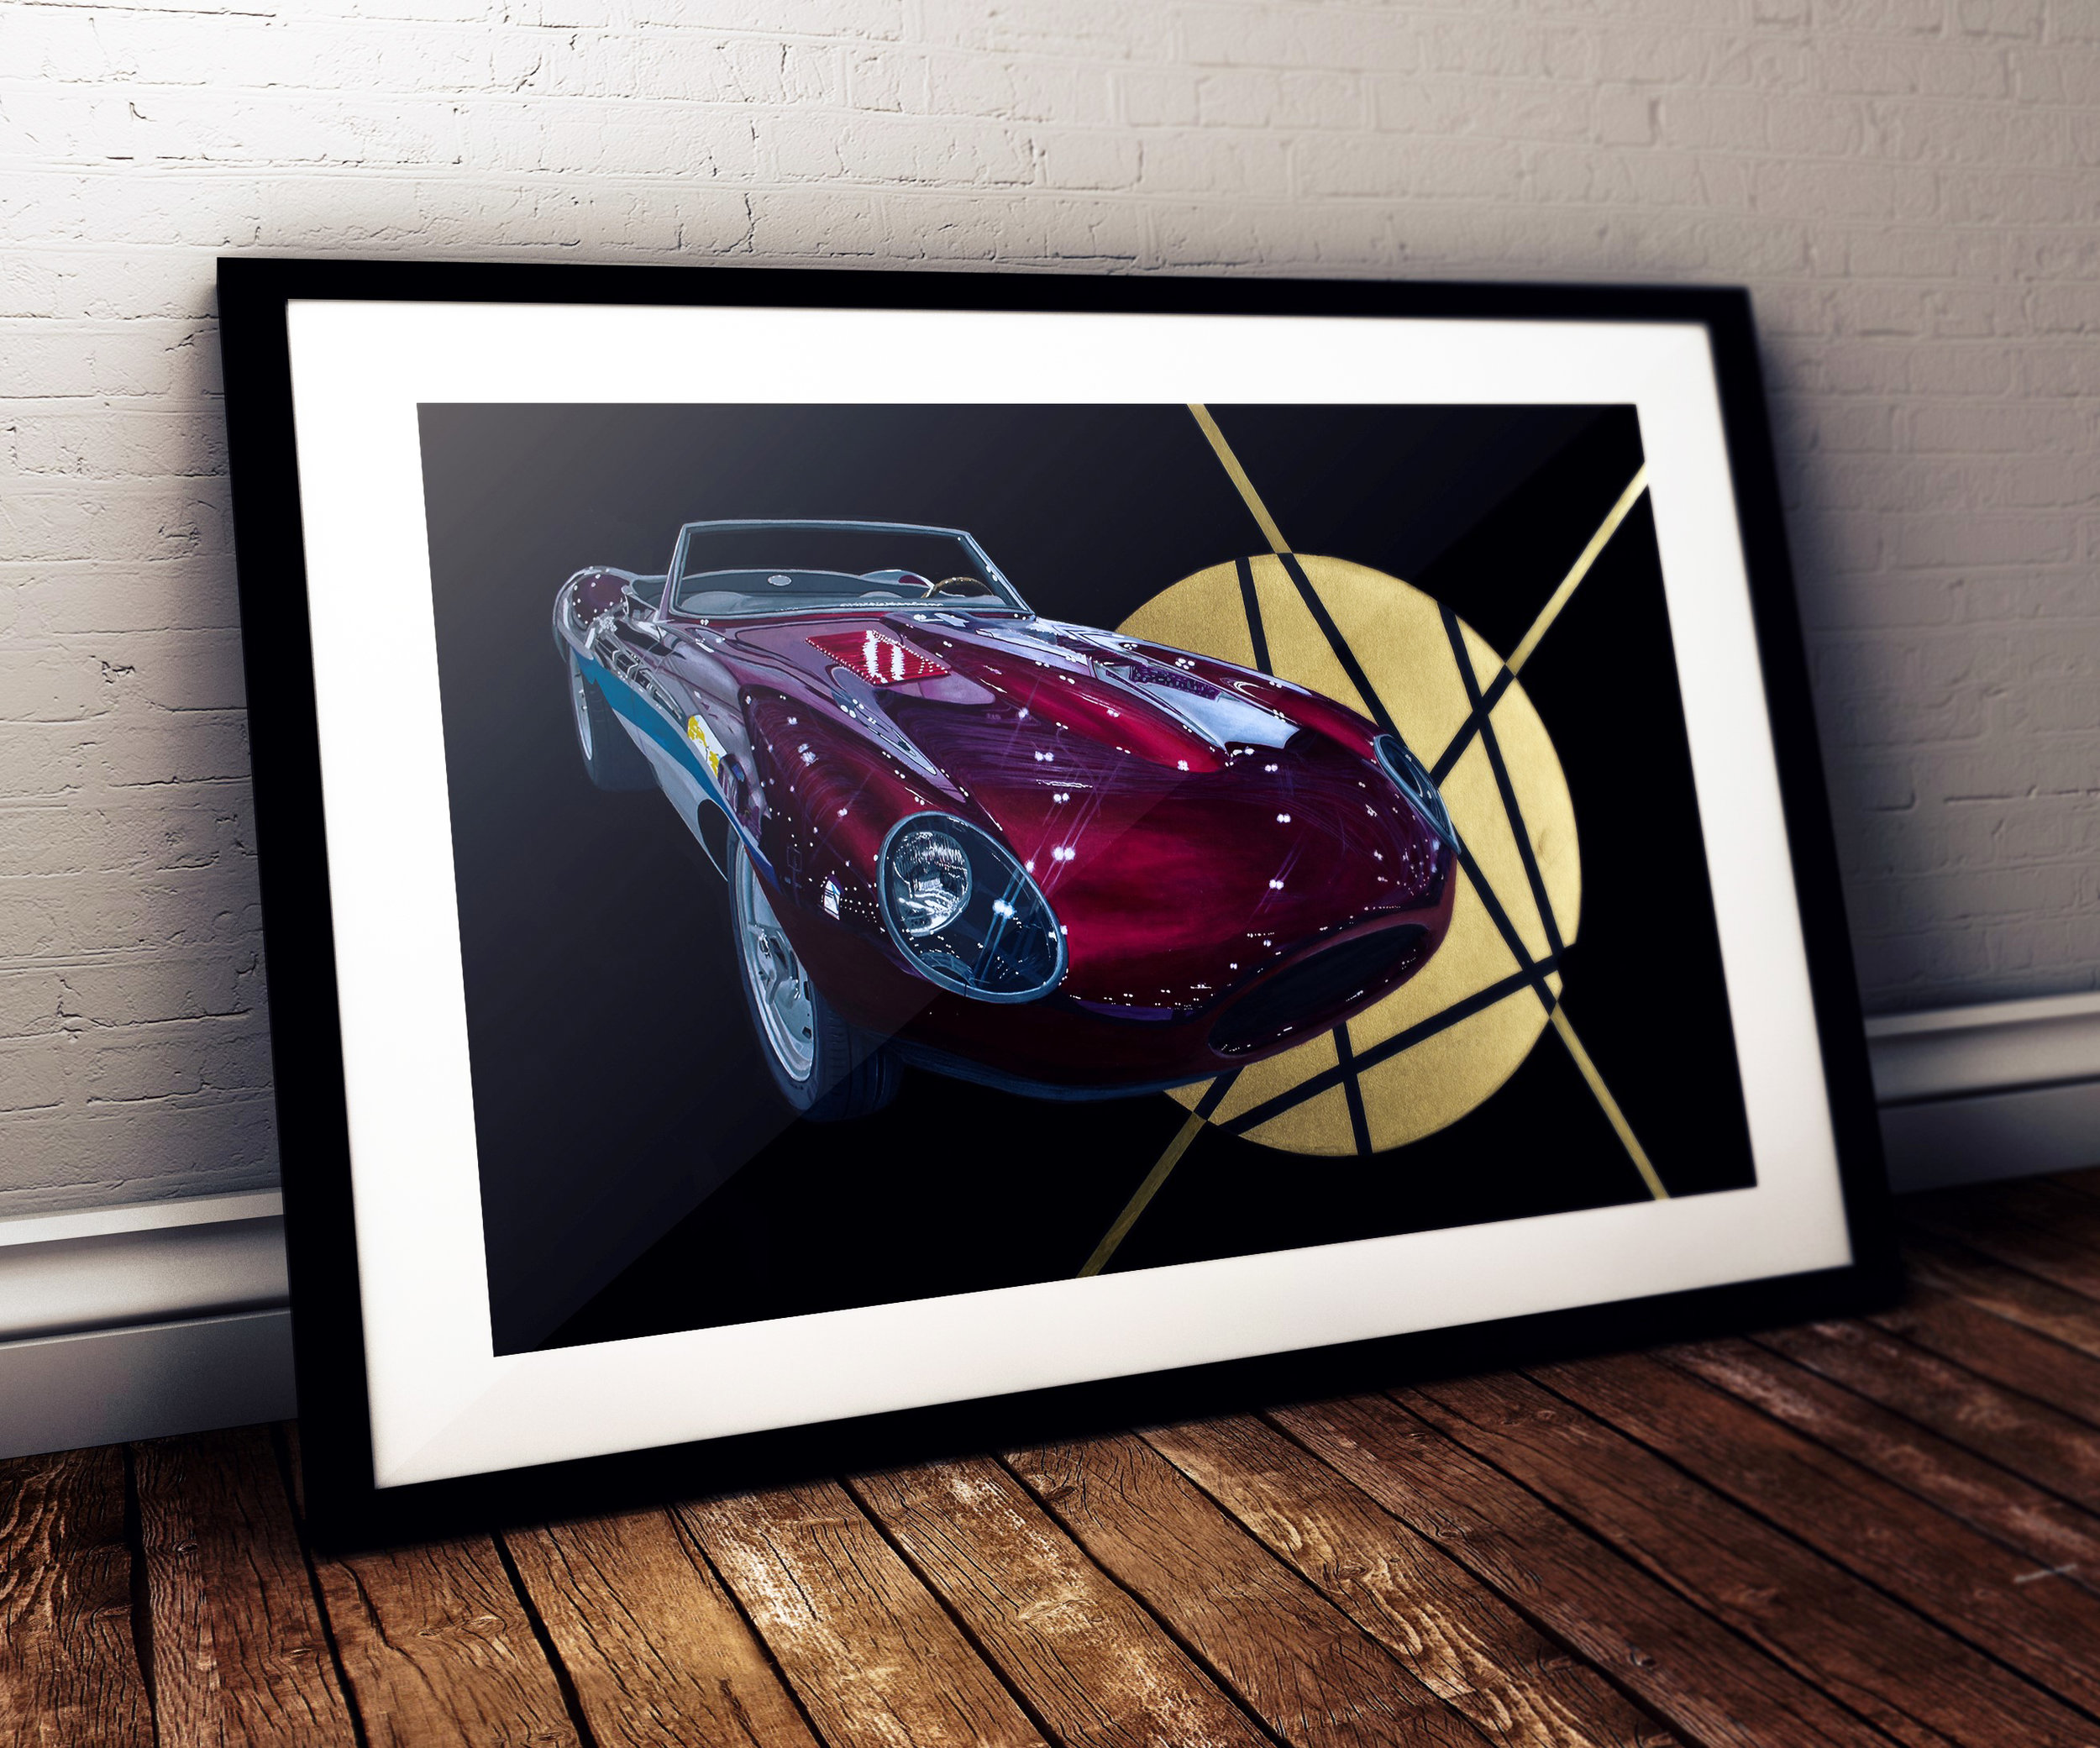 Jaguar E-type Speedster Painting - Ian Salmon Art - Mockup 1 (3)